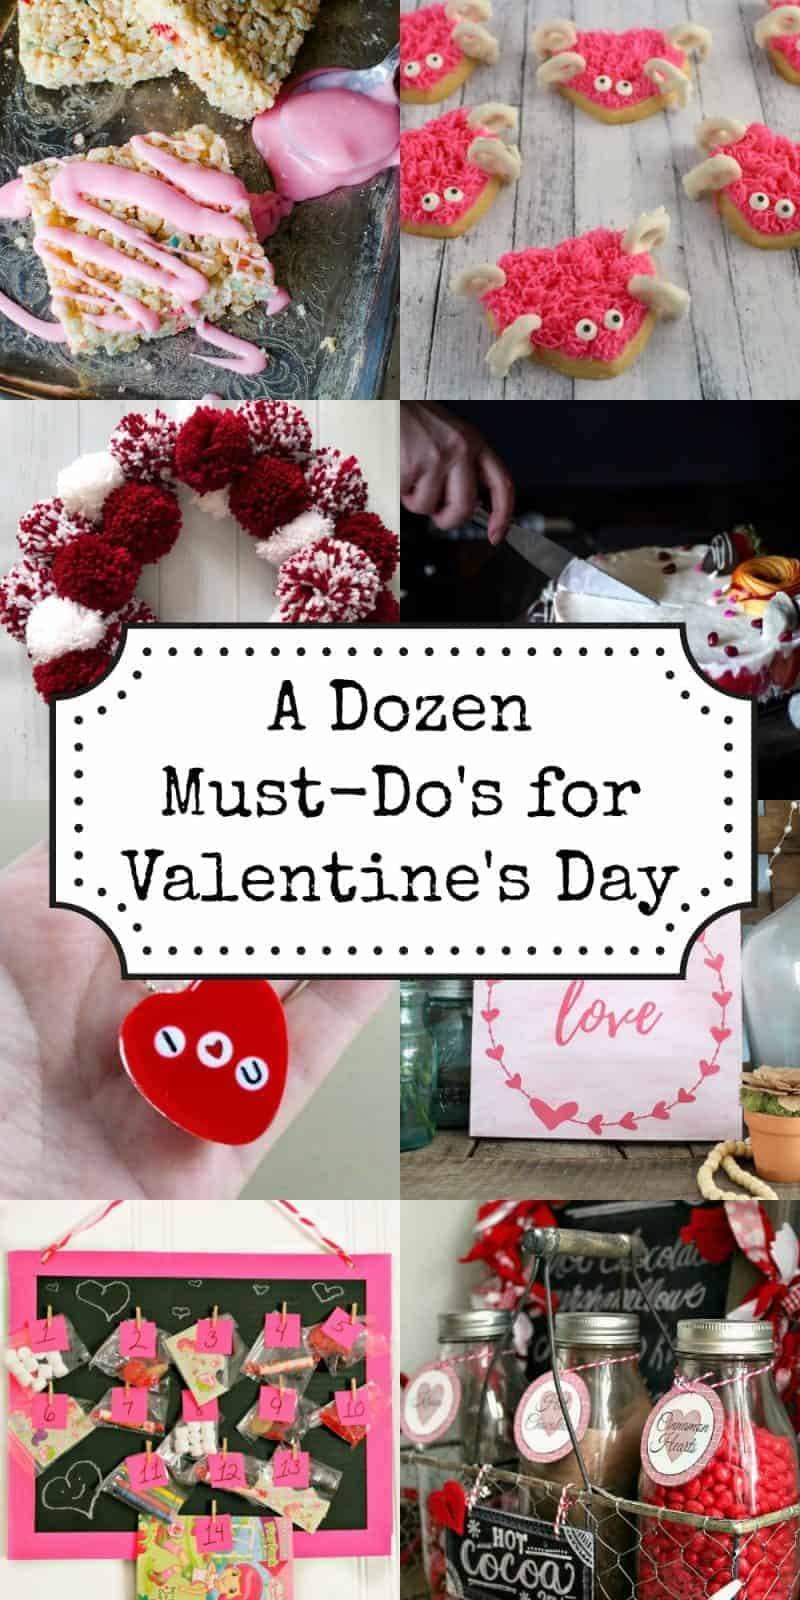 12 fun how to and must do's for Valentine's Day. Everything from cookies to wreaths, to kids crafts - a one-stop collection for Valentine's Day ideas and inspiration.